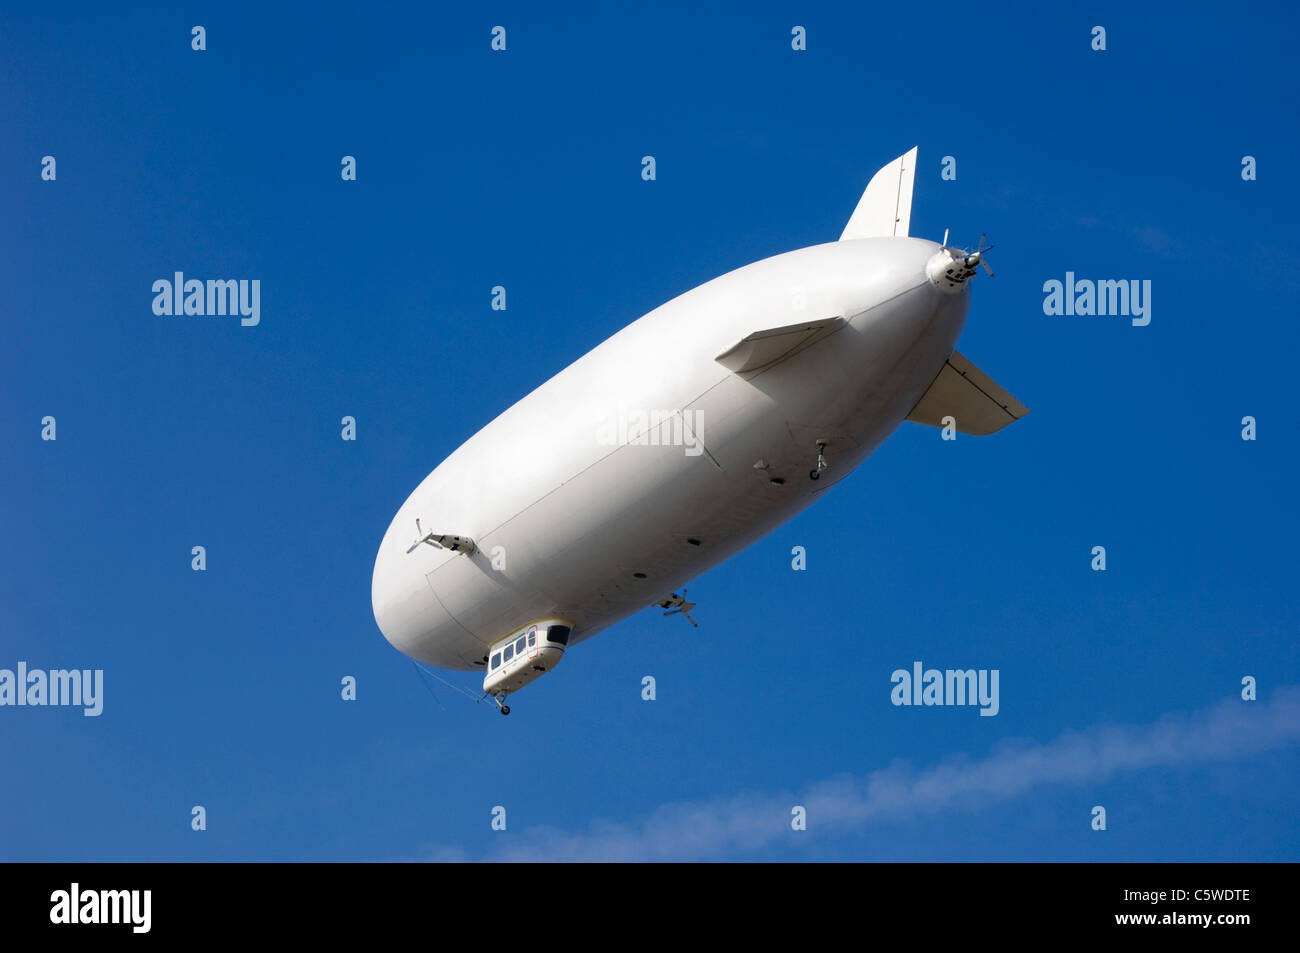 Germany, Baden-Württemberg, Blimp, low angle view - Stock Image